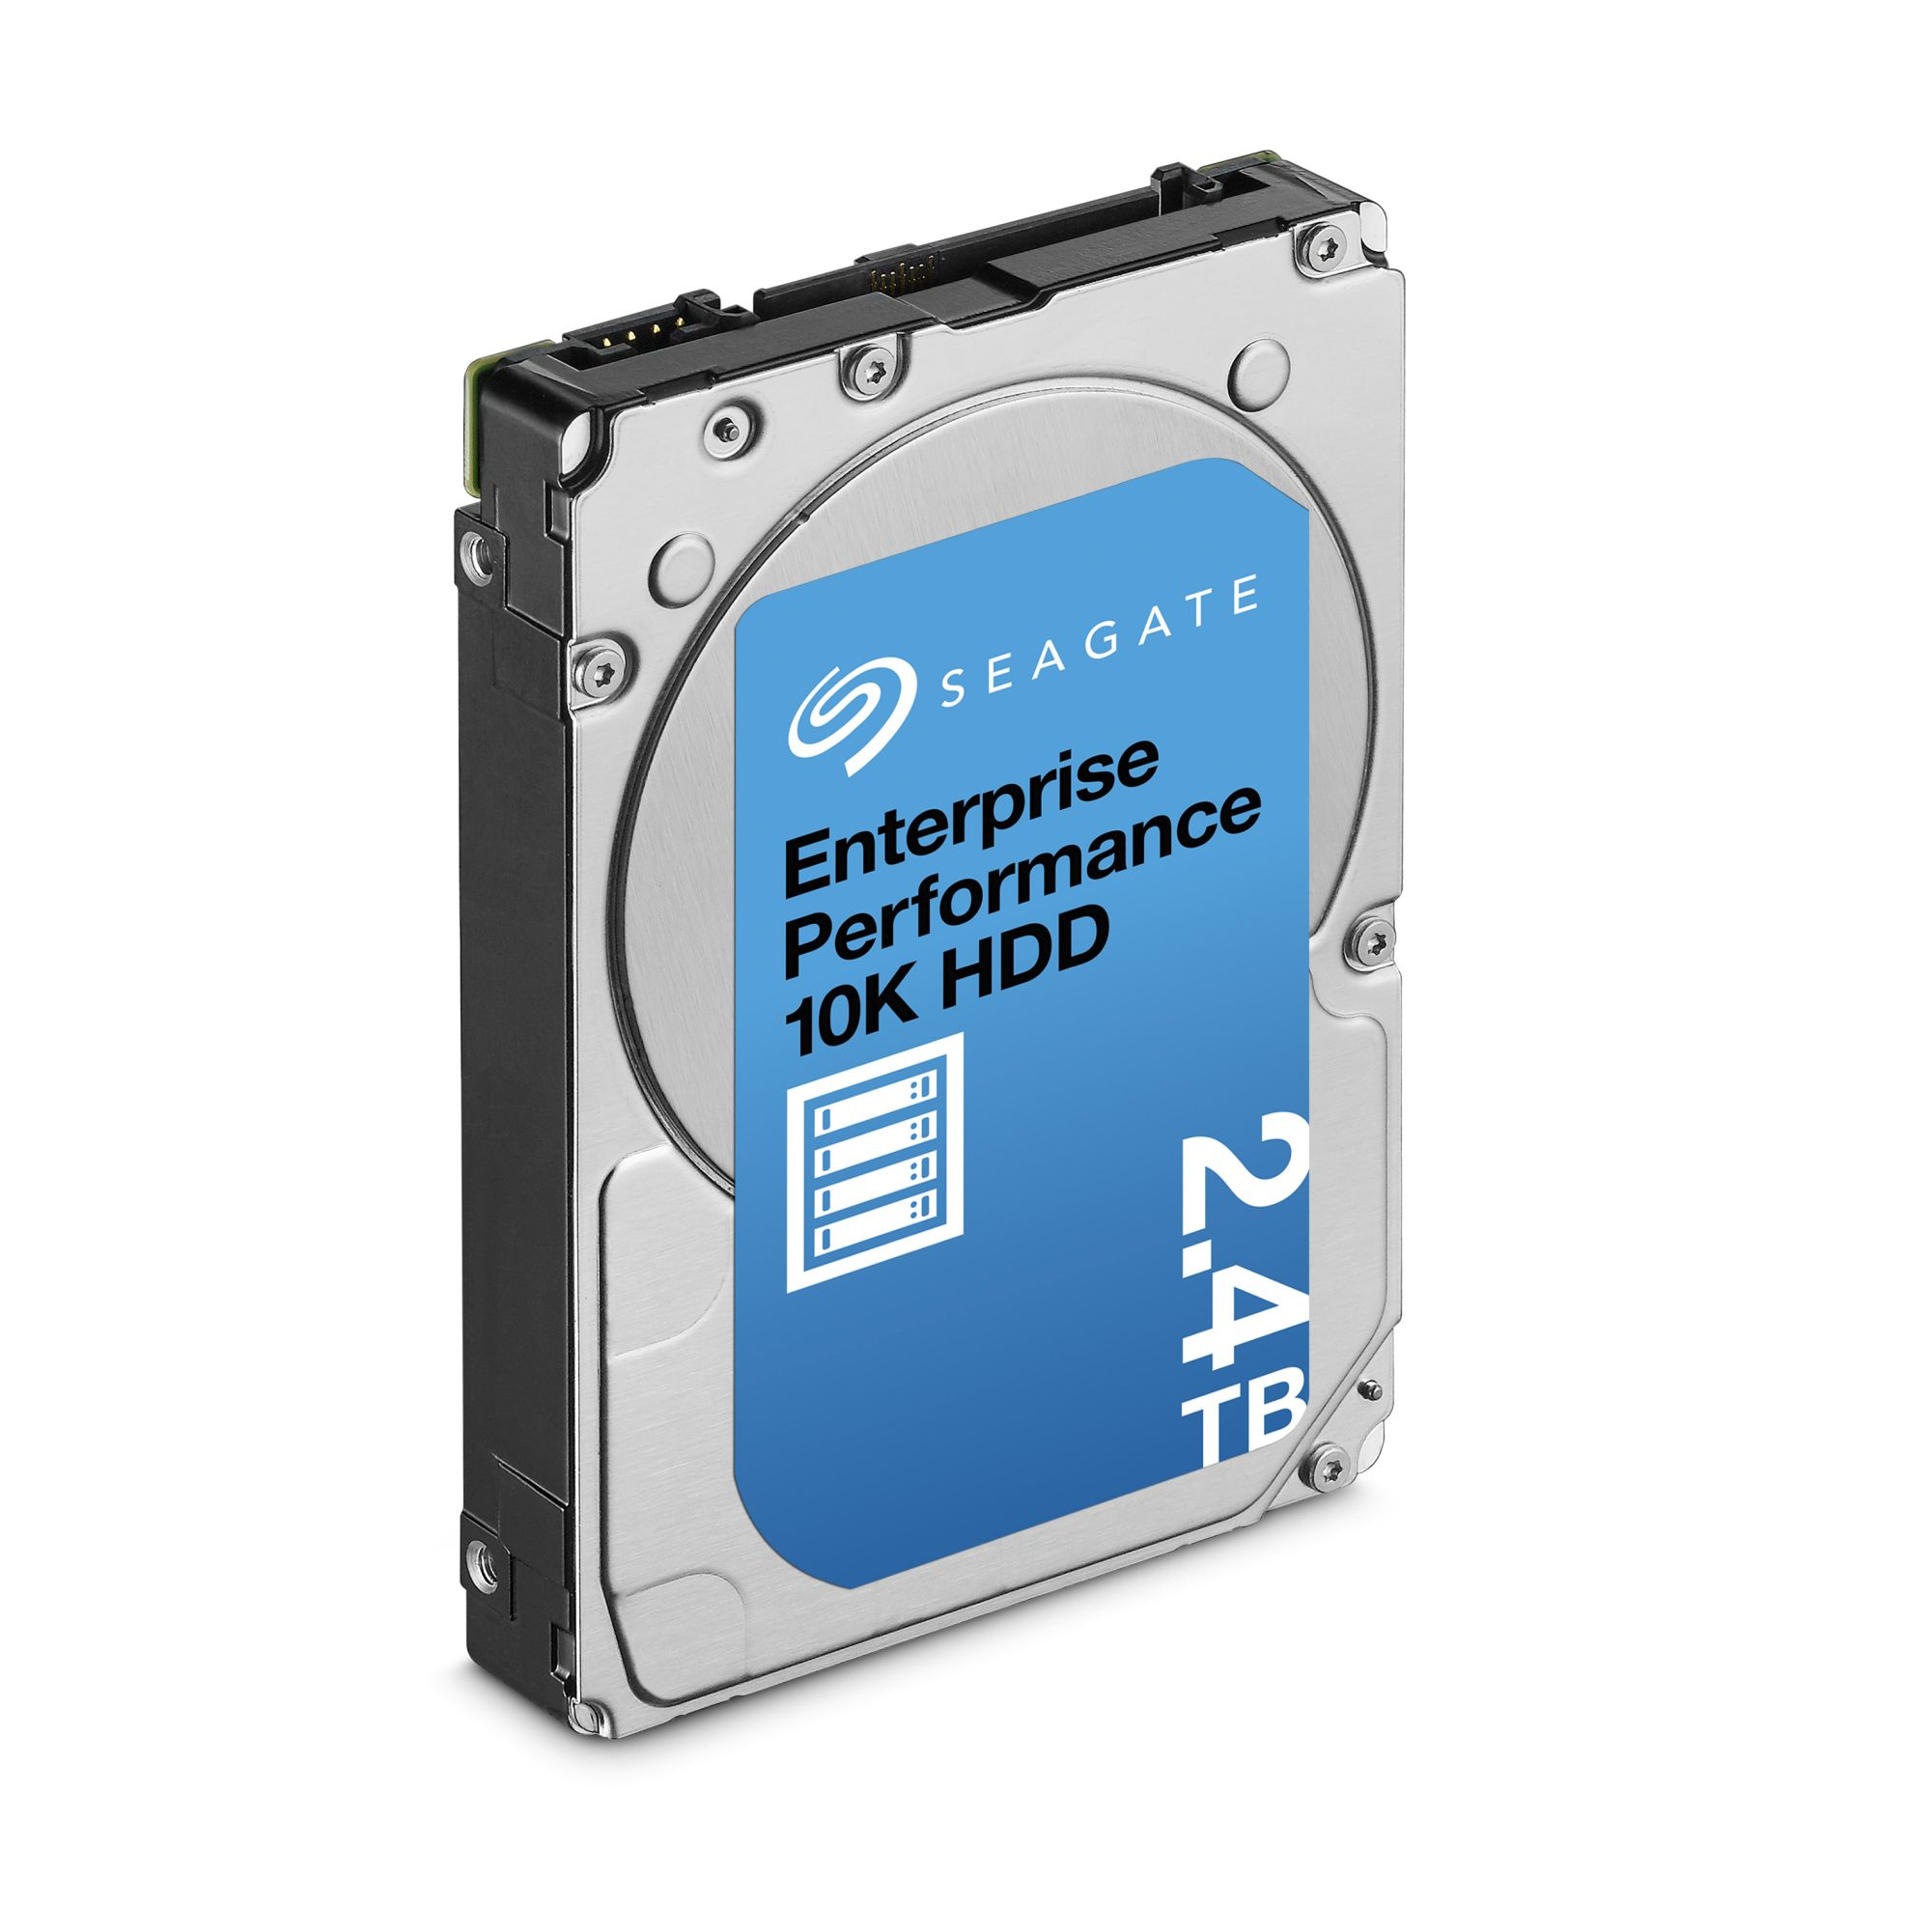 SEAGATE_Enterprise_Performance_10K_HDD_v9_2_4TB_Right_Hi-Res